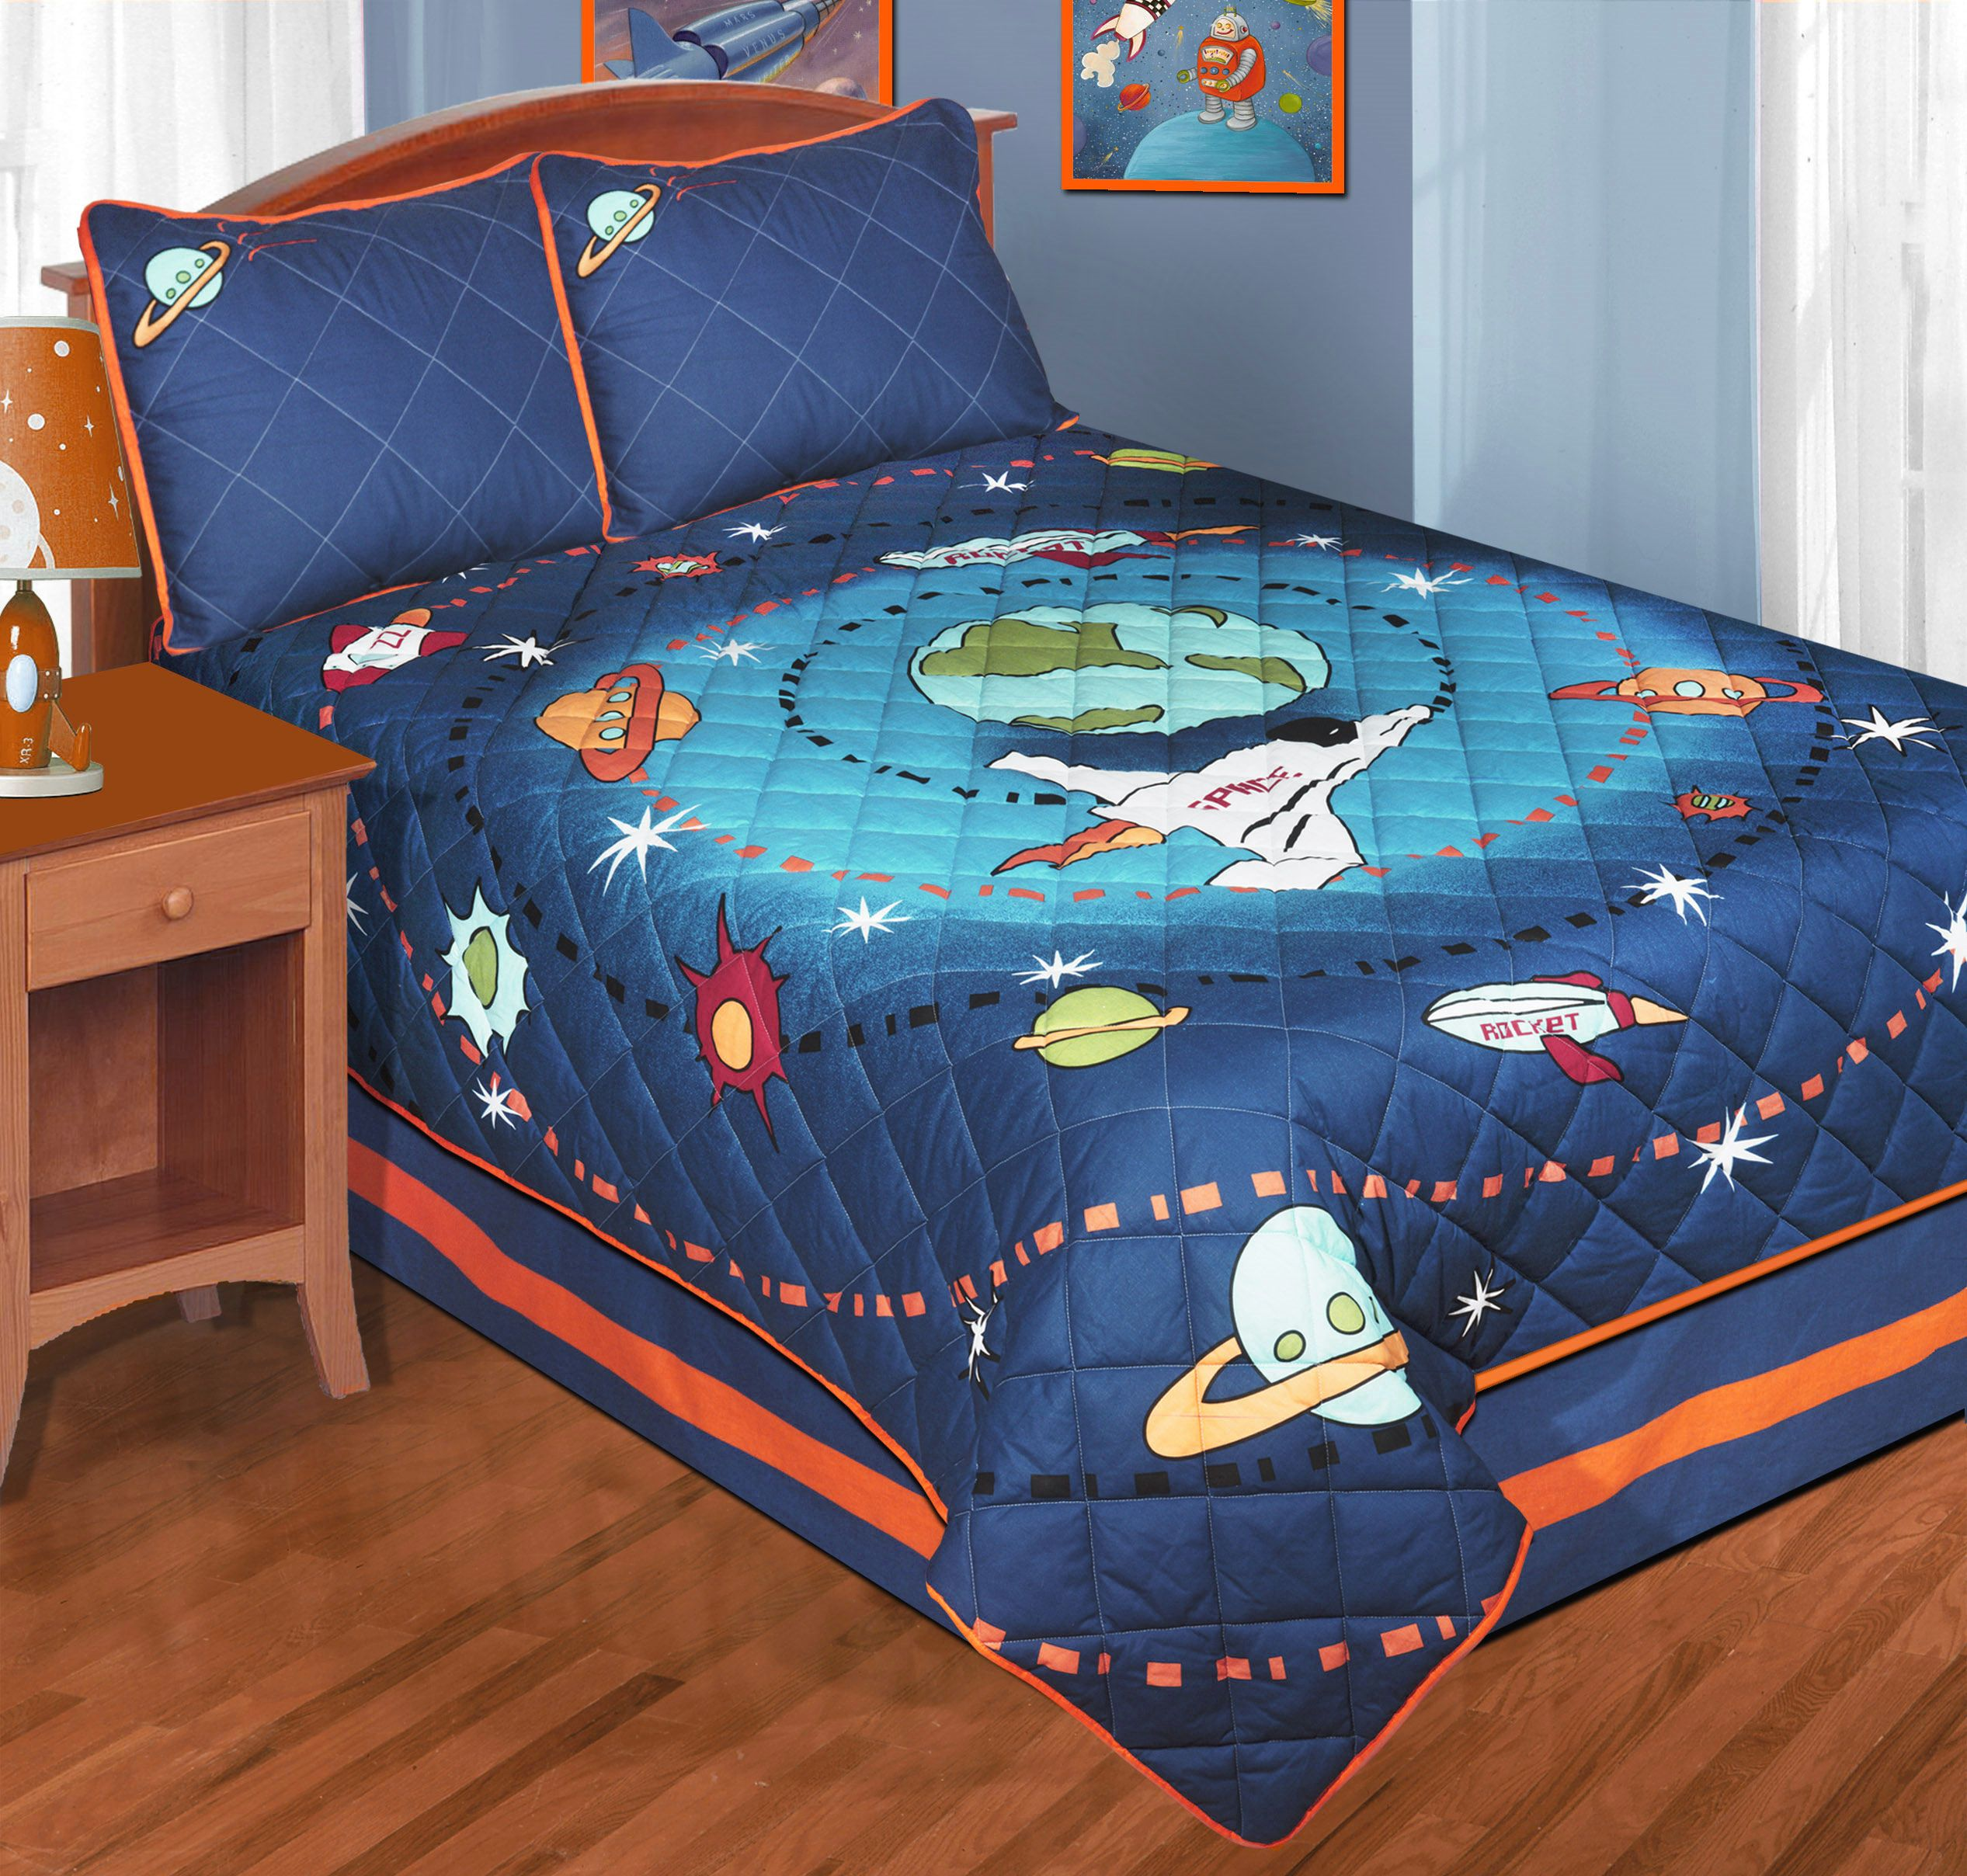 Rocket Bed blue outer space bedding twin or full quilt sets - galaxy space